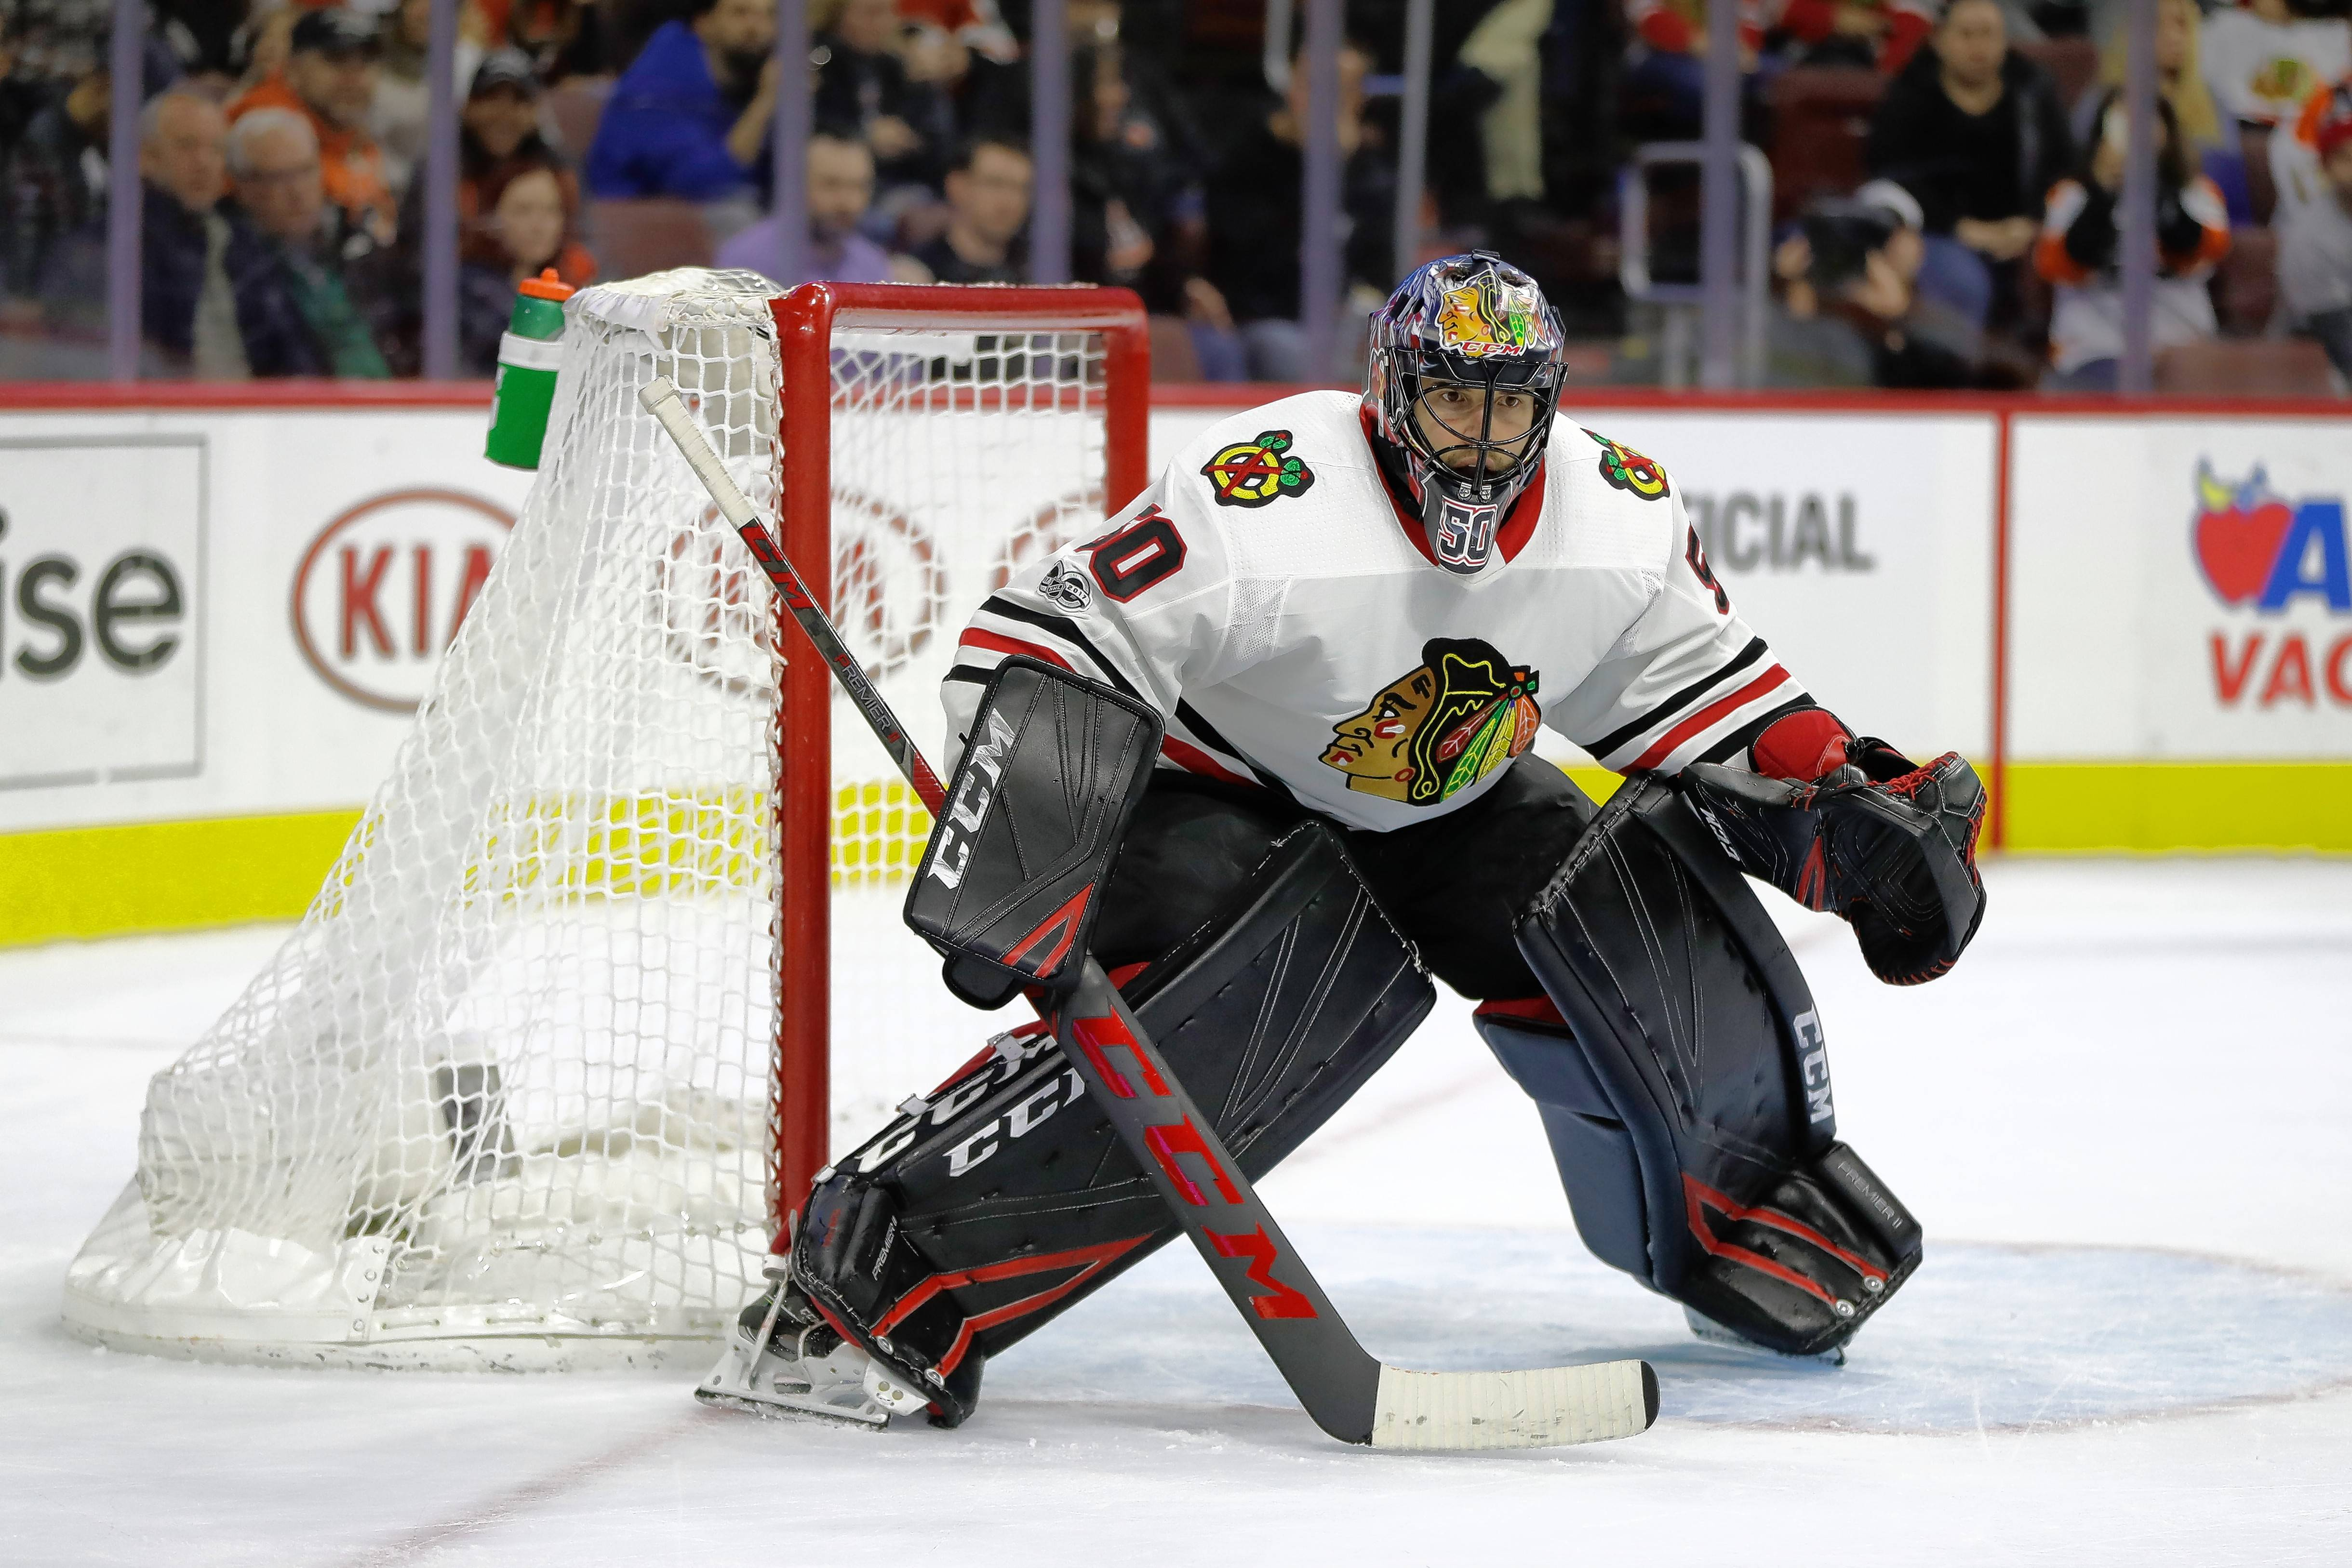 Chicago Blackhawks goalie Corey Crawford is still uncertain if he will be ready at the start of training camp.